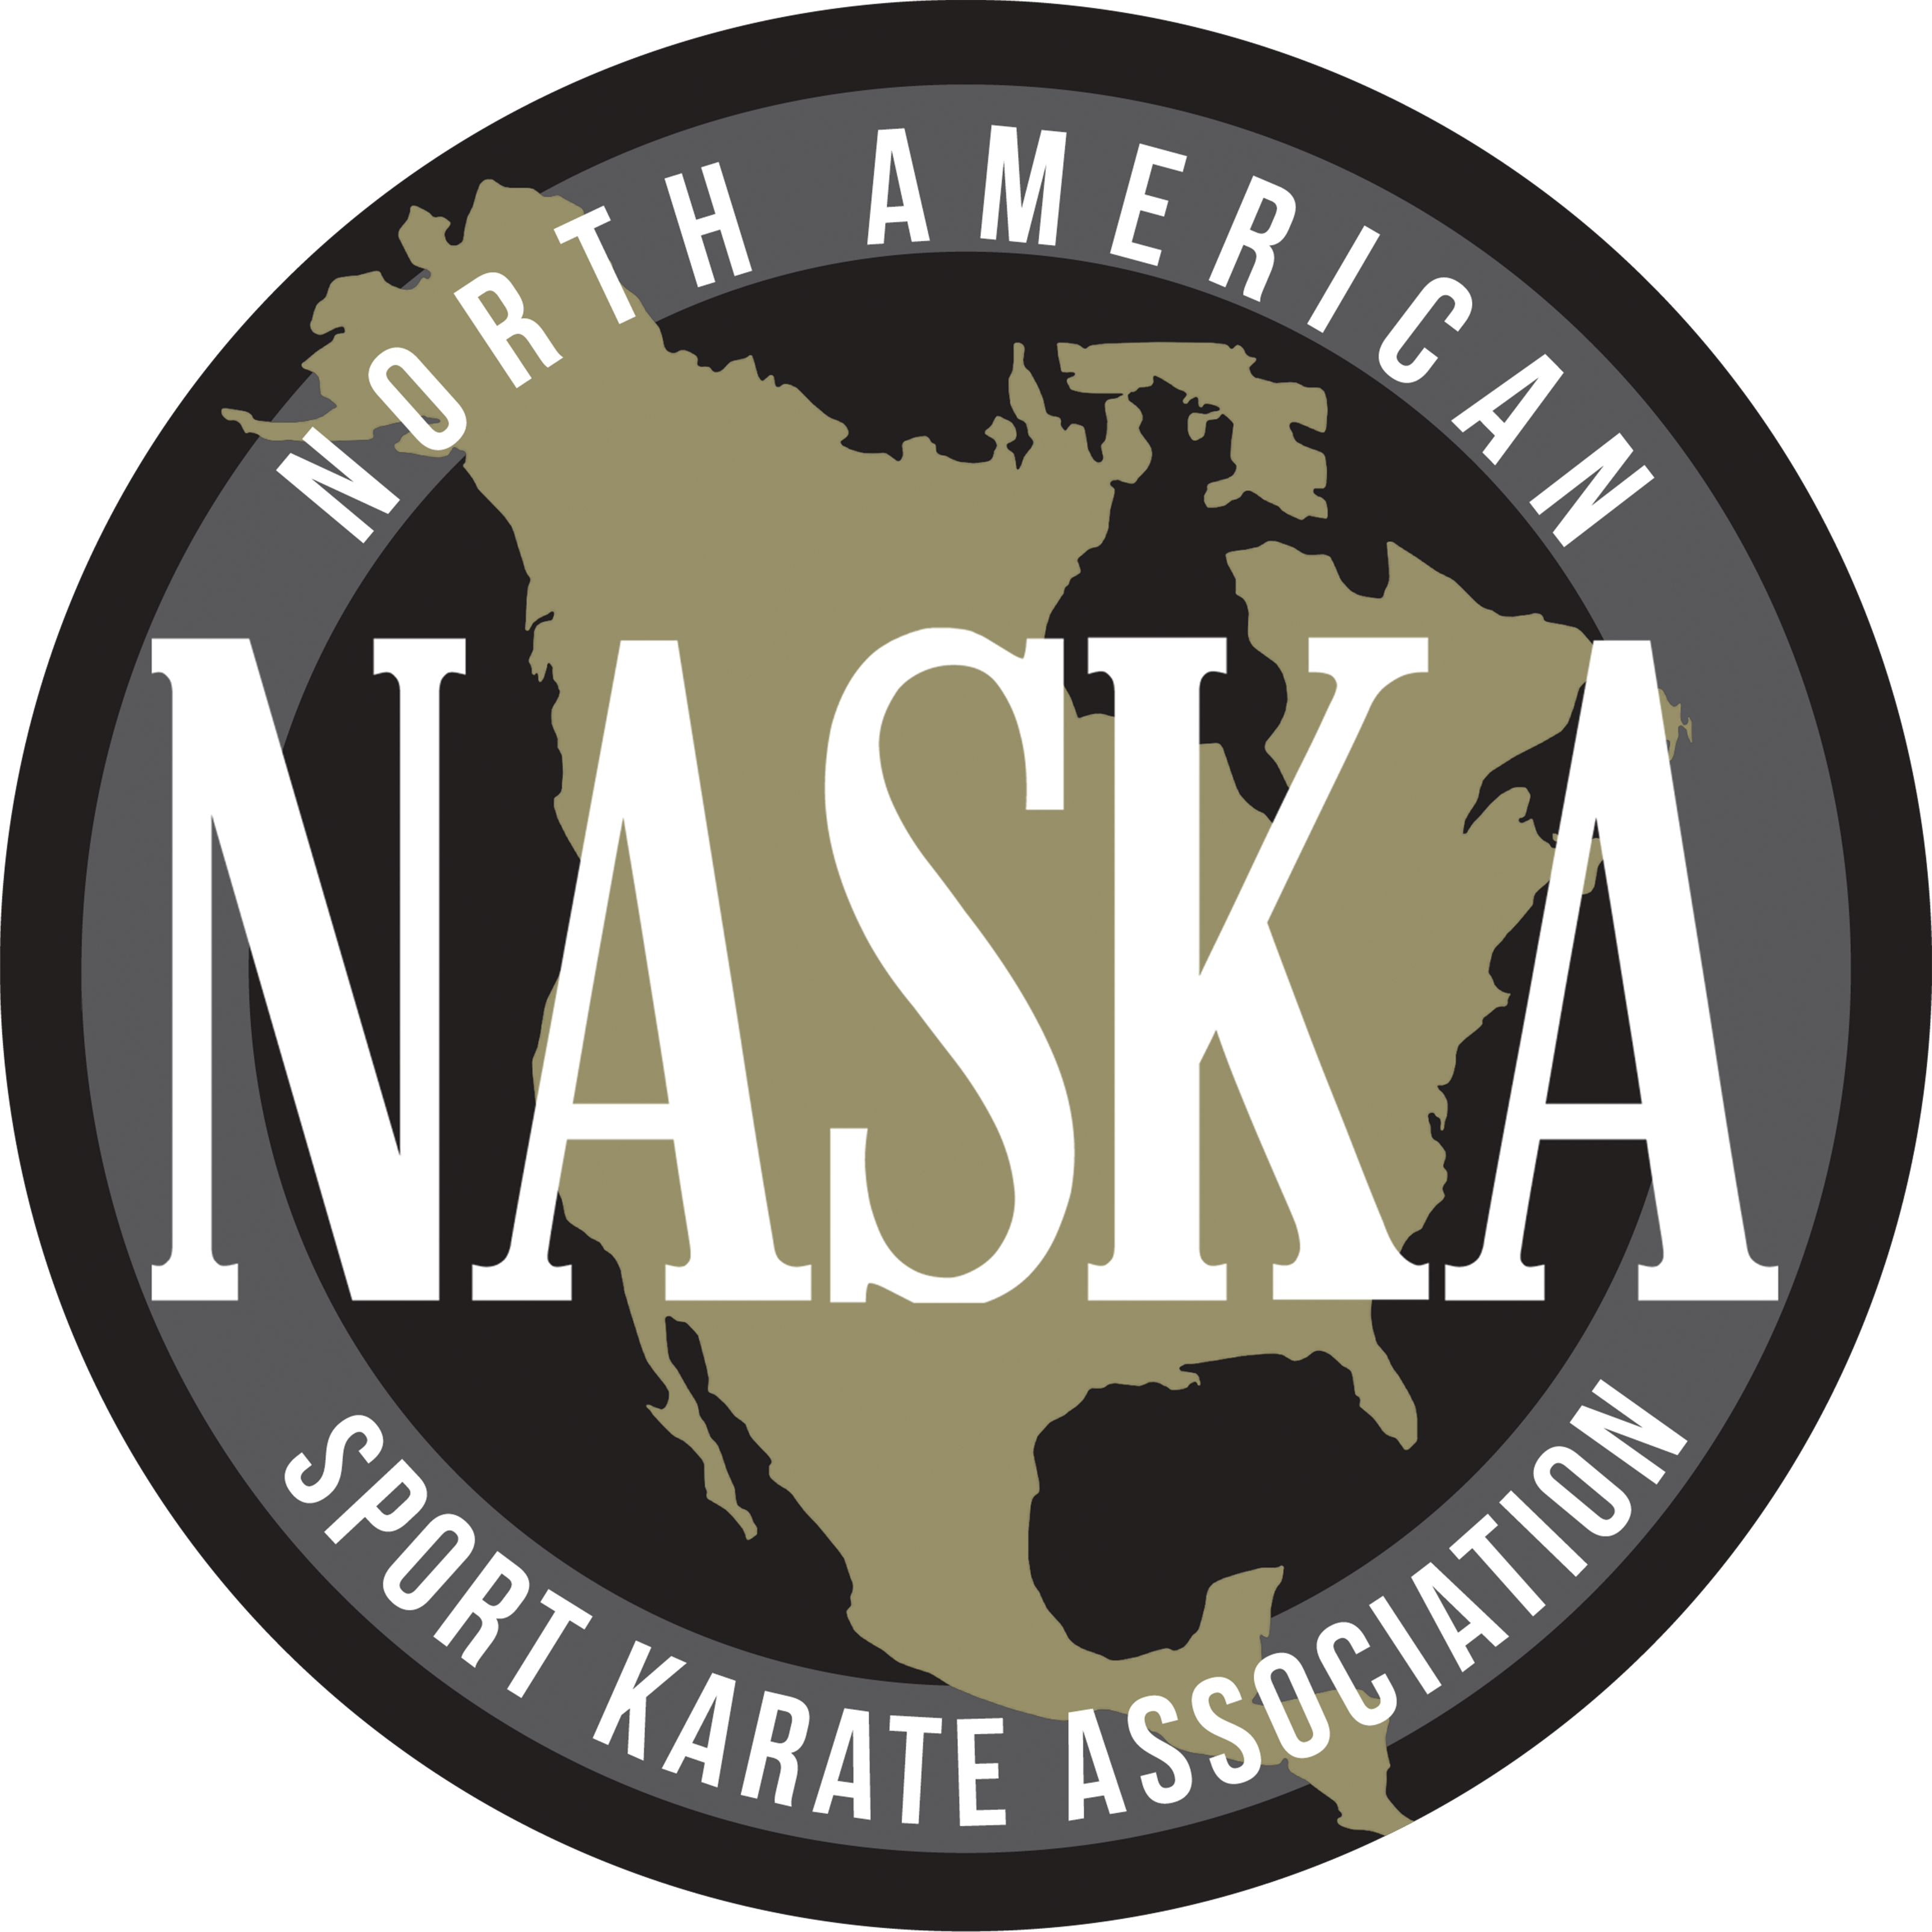 NASKA • North American Sport Karate Association